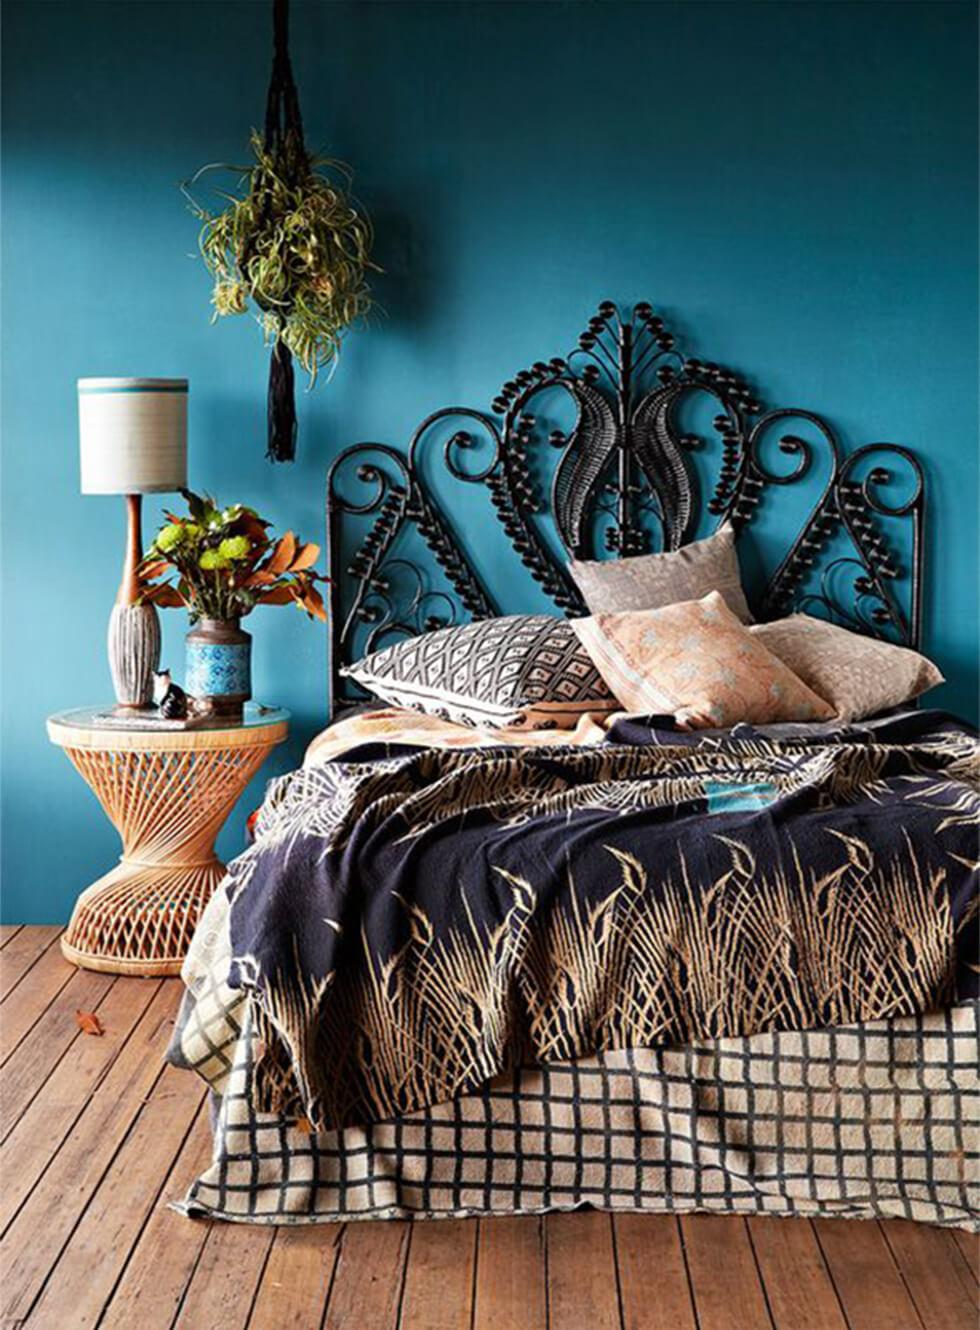 Teal bedroom with a rattan side table and ornate peacock rattan bed